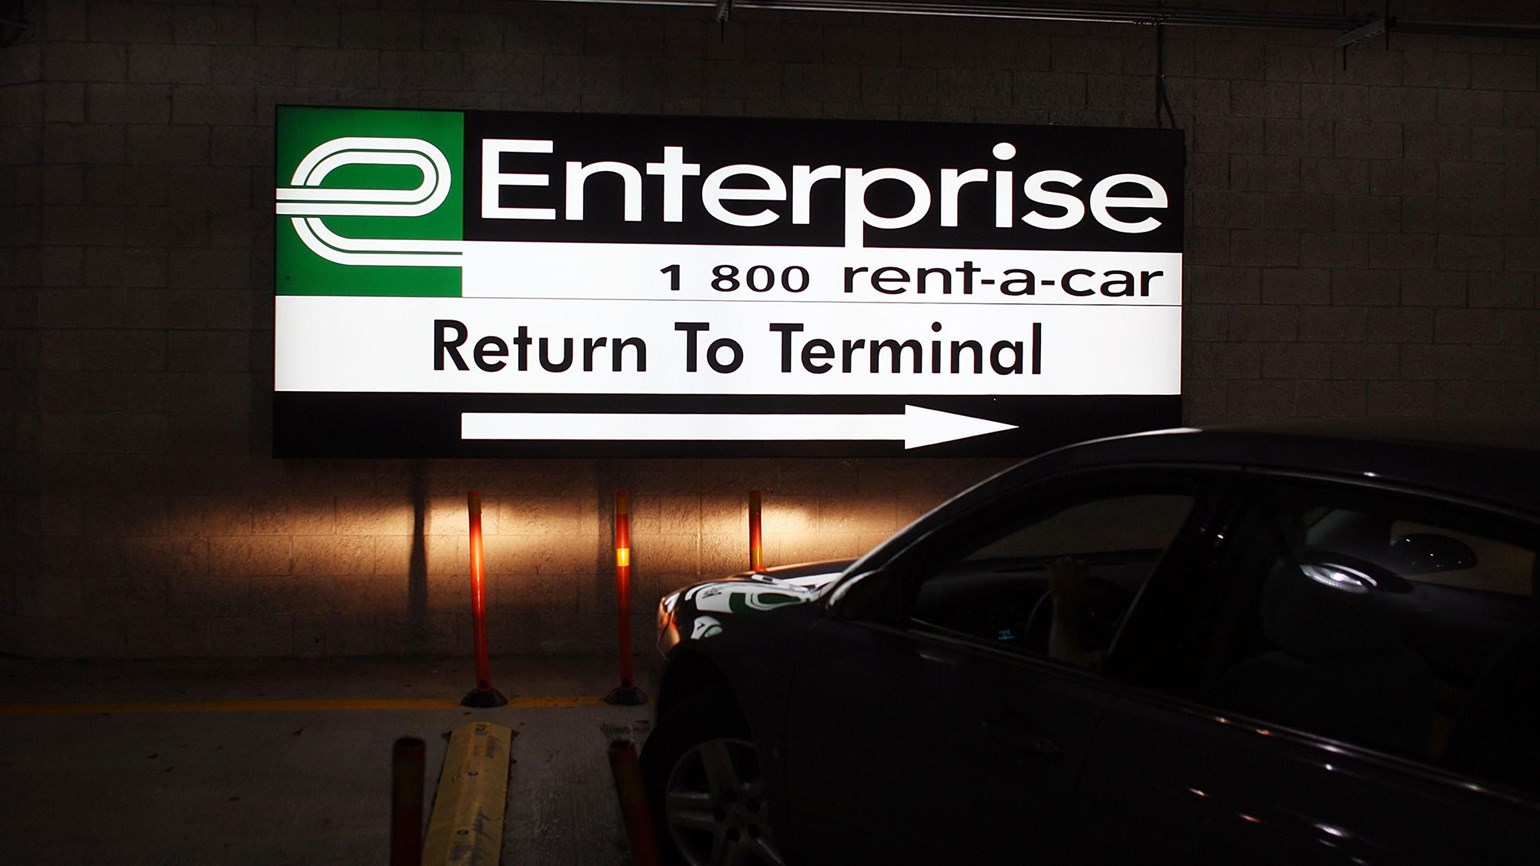 Enterprise starting vehicle subscription service